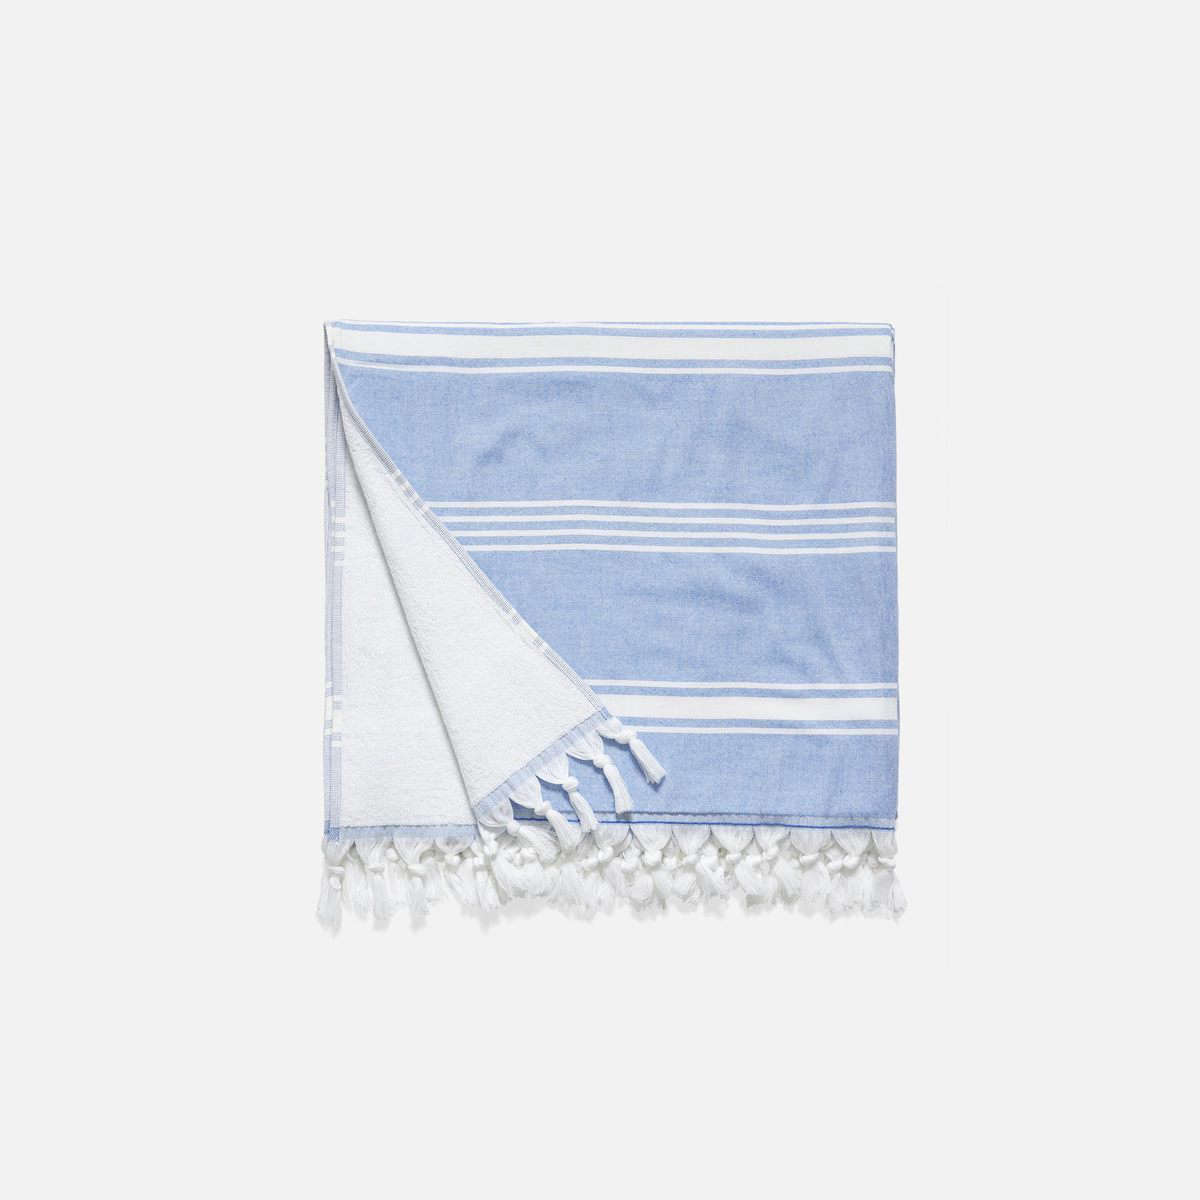 Brooklinen's Turkish cottonHammam Towel is $65 and is available in five colors (shown above in Atlantic); $65.